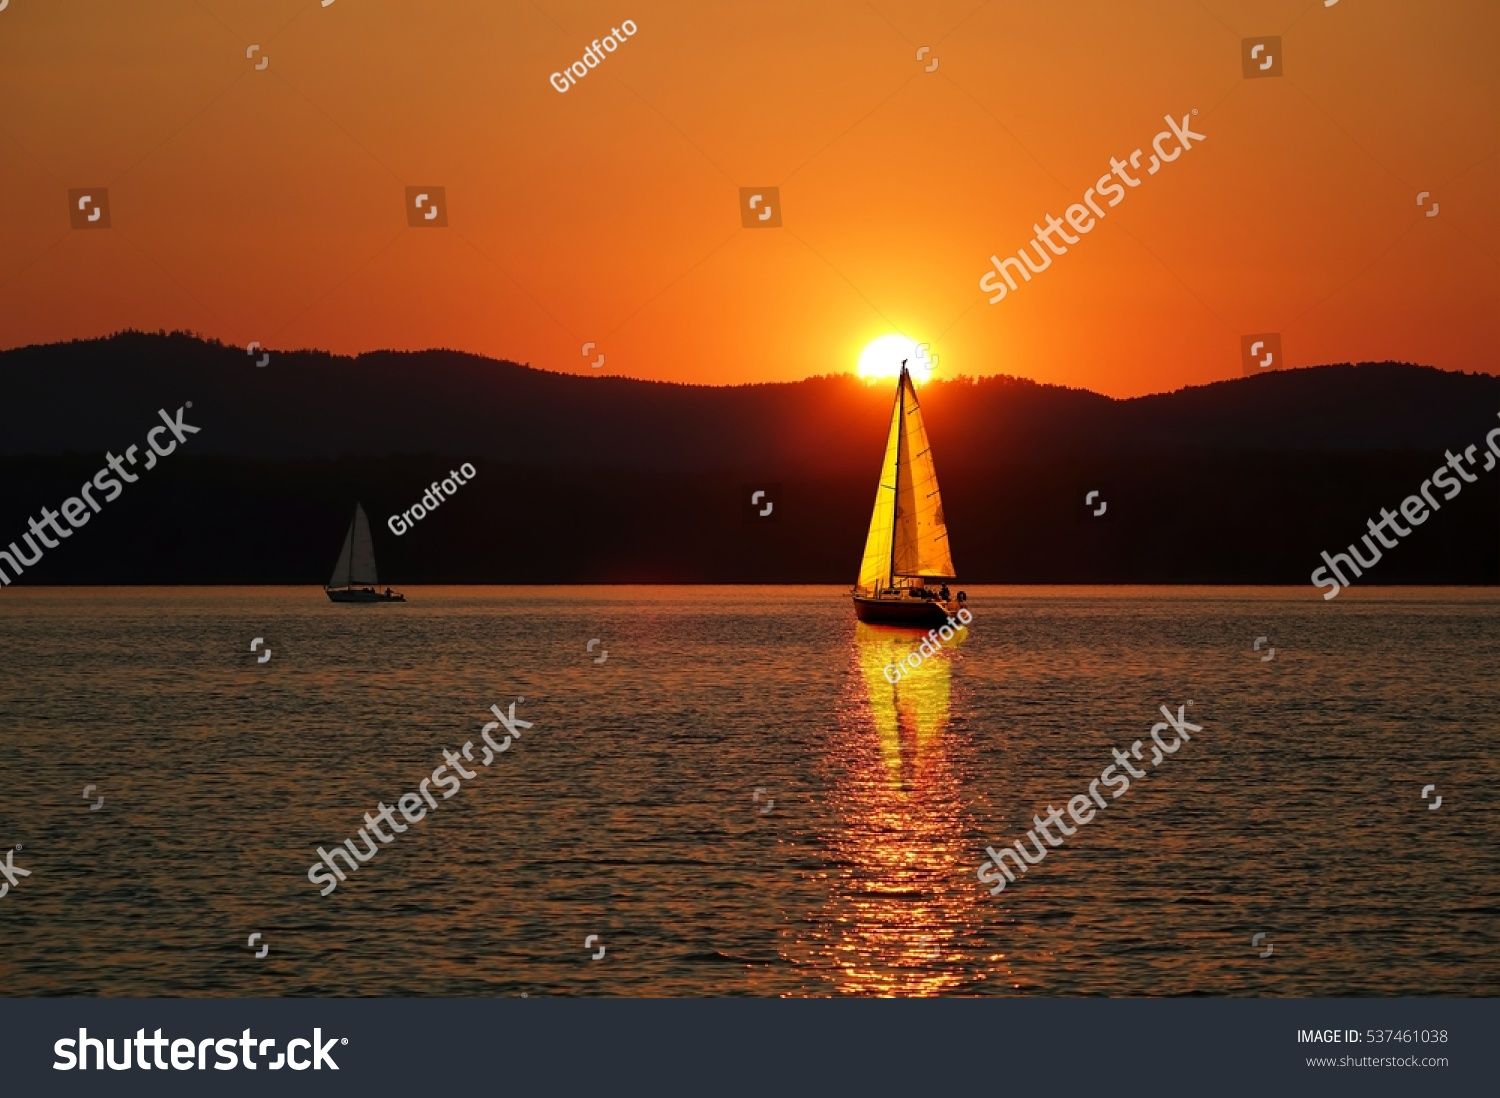 Sailboats on the beautiful Lake of the Southern Urals.Sailboat in the sunset.Reserved places at the Gold Lake South Urals